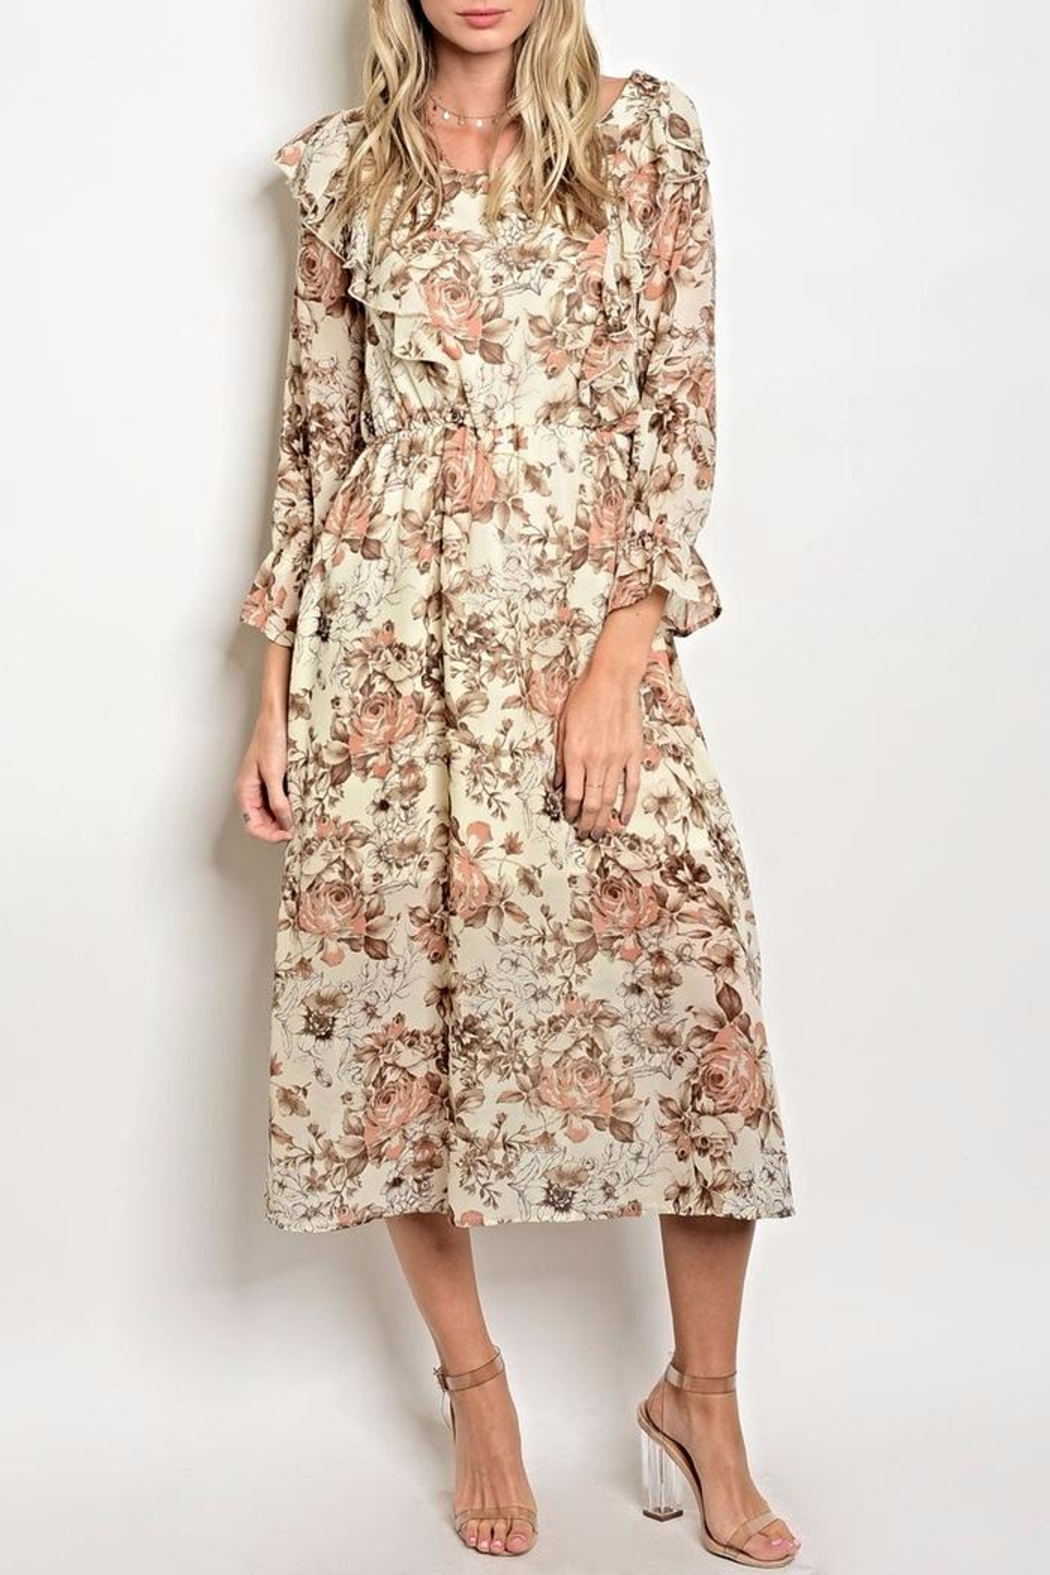 One Story Floral Midi Dress - Main Image